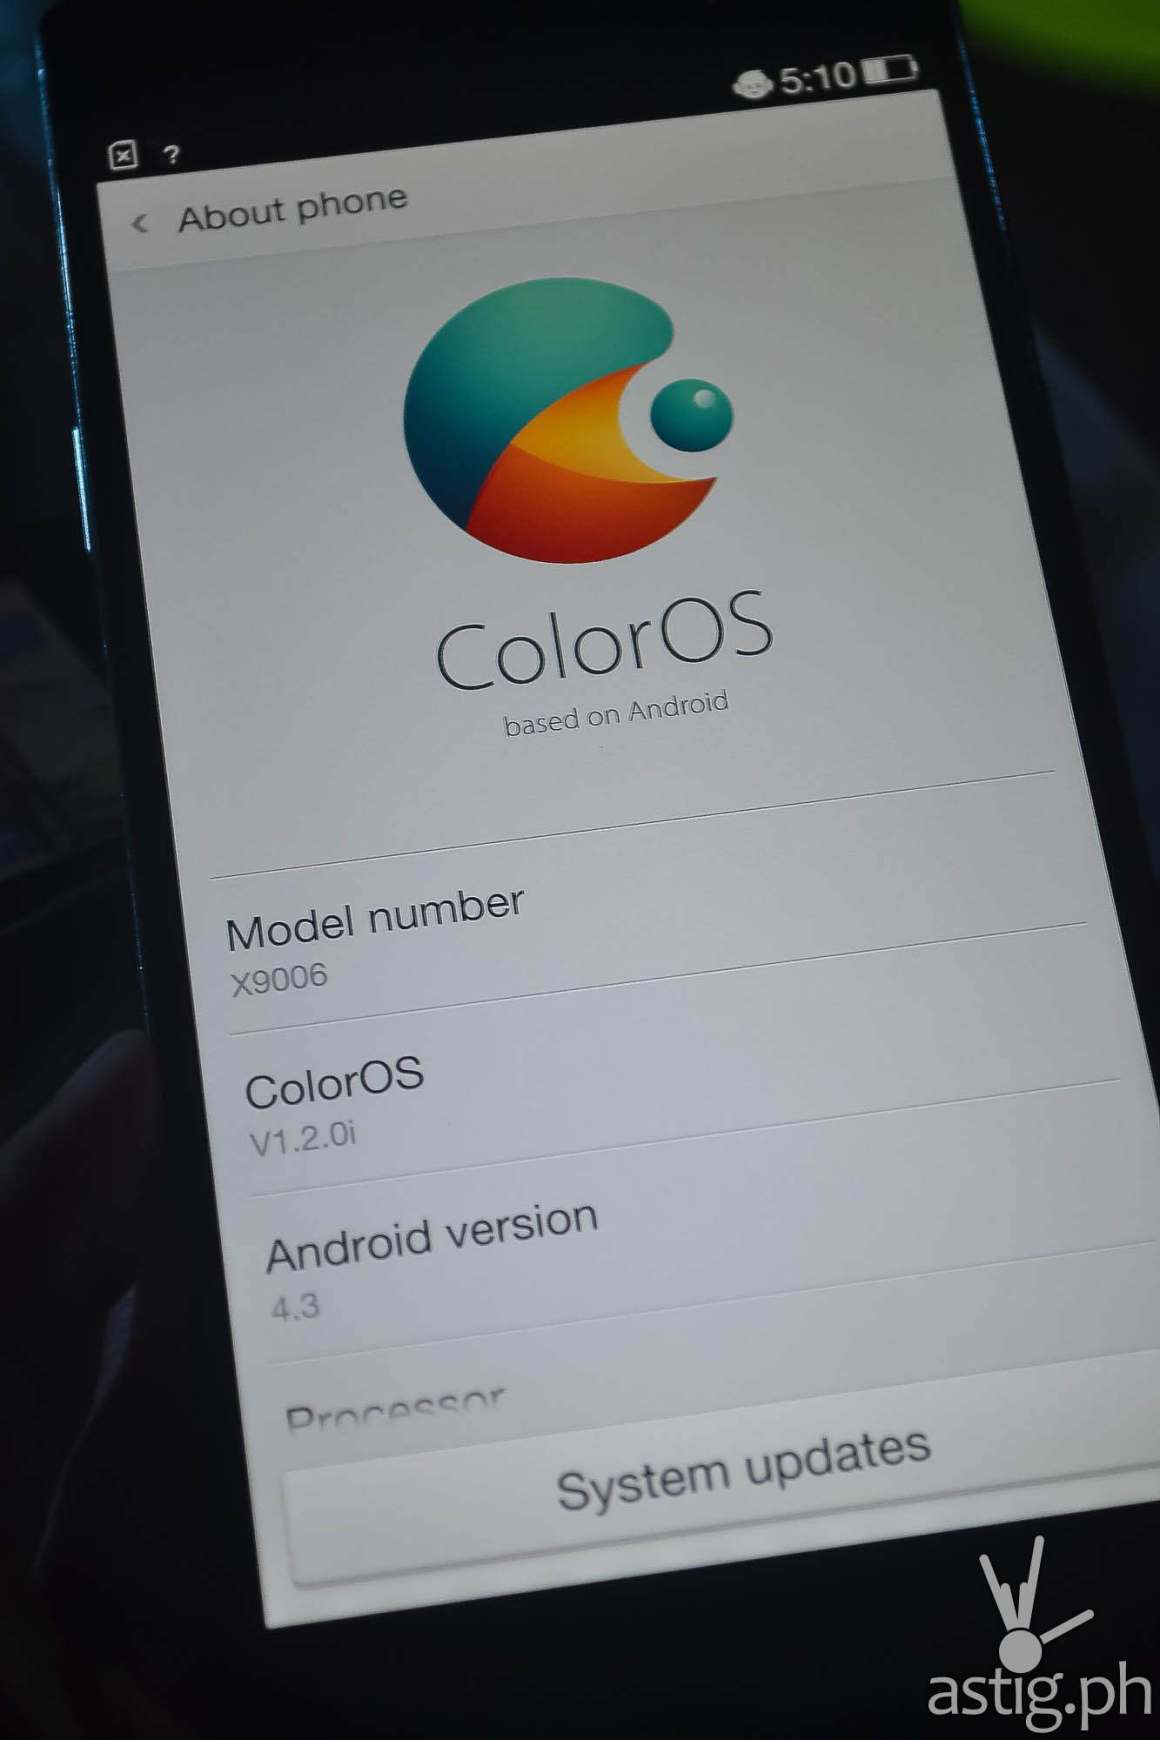 OPPO Find 7 ColorOS details